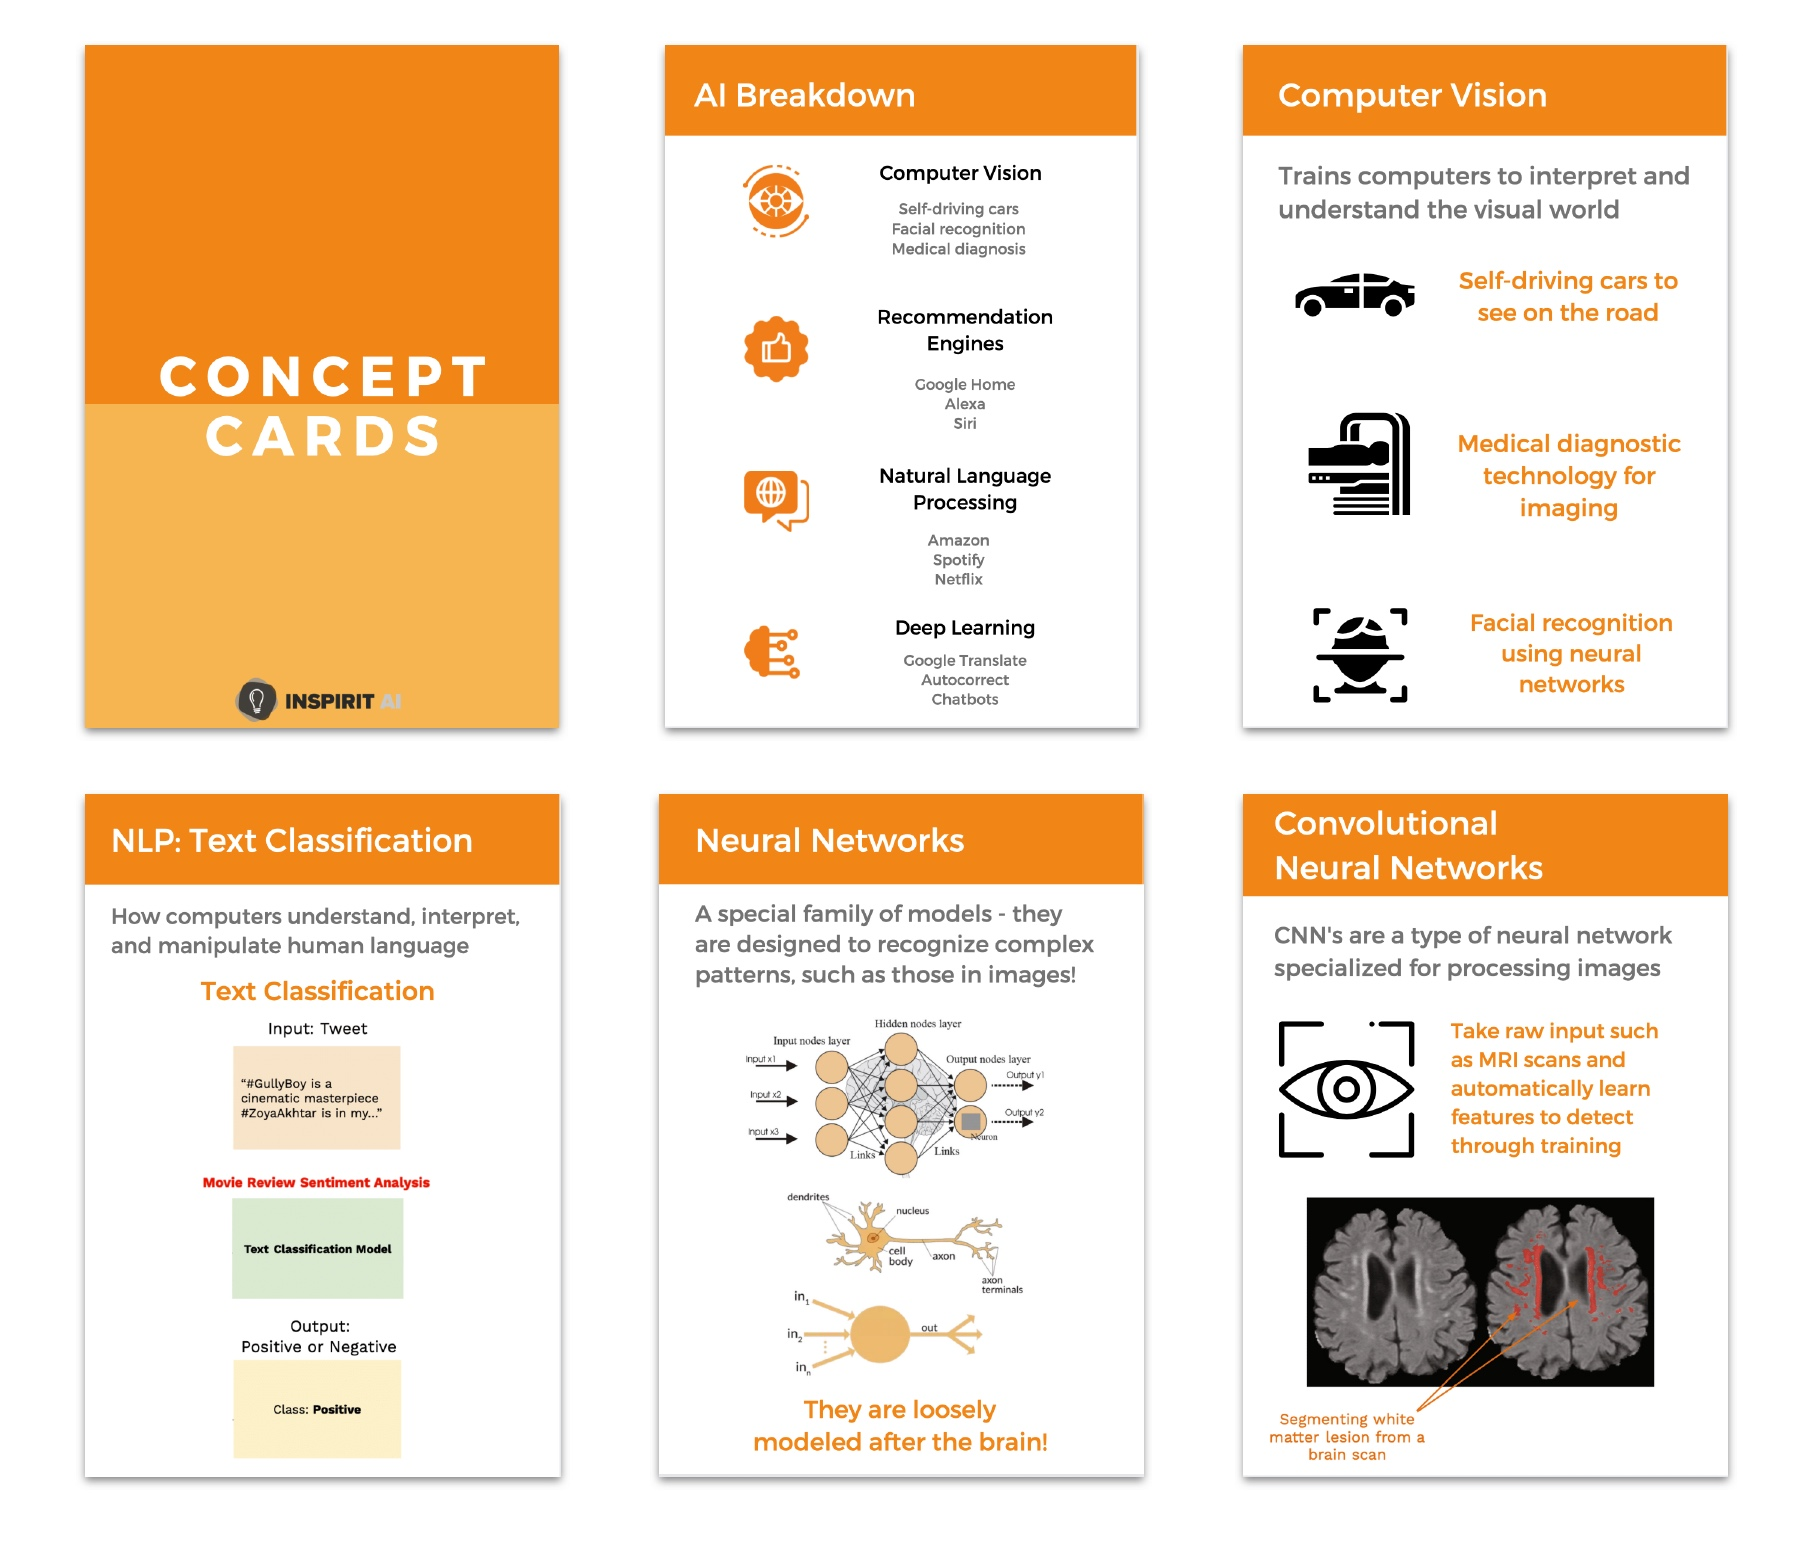 Concept Card Examples - Take a look at some examples of concept cards from our curriculum. Join AI Scholars to learn more about Computer Vision, Neural Networks, NLP, and more!